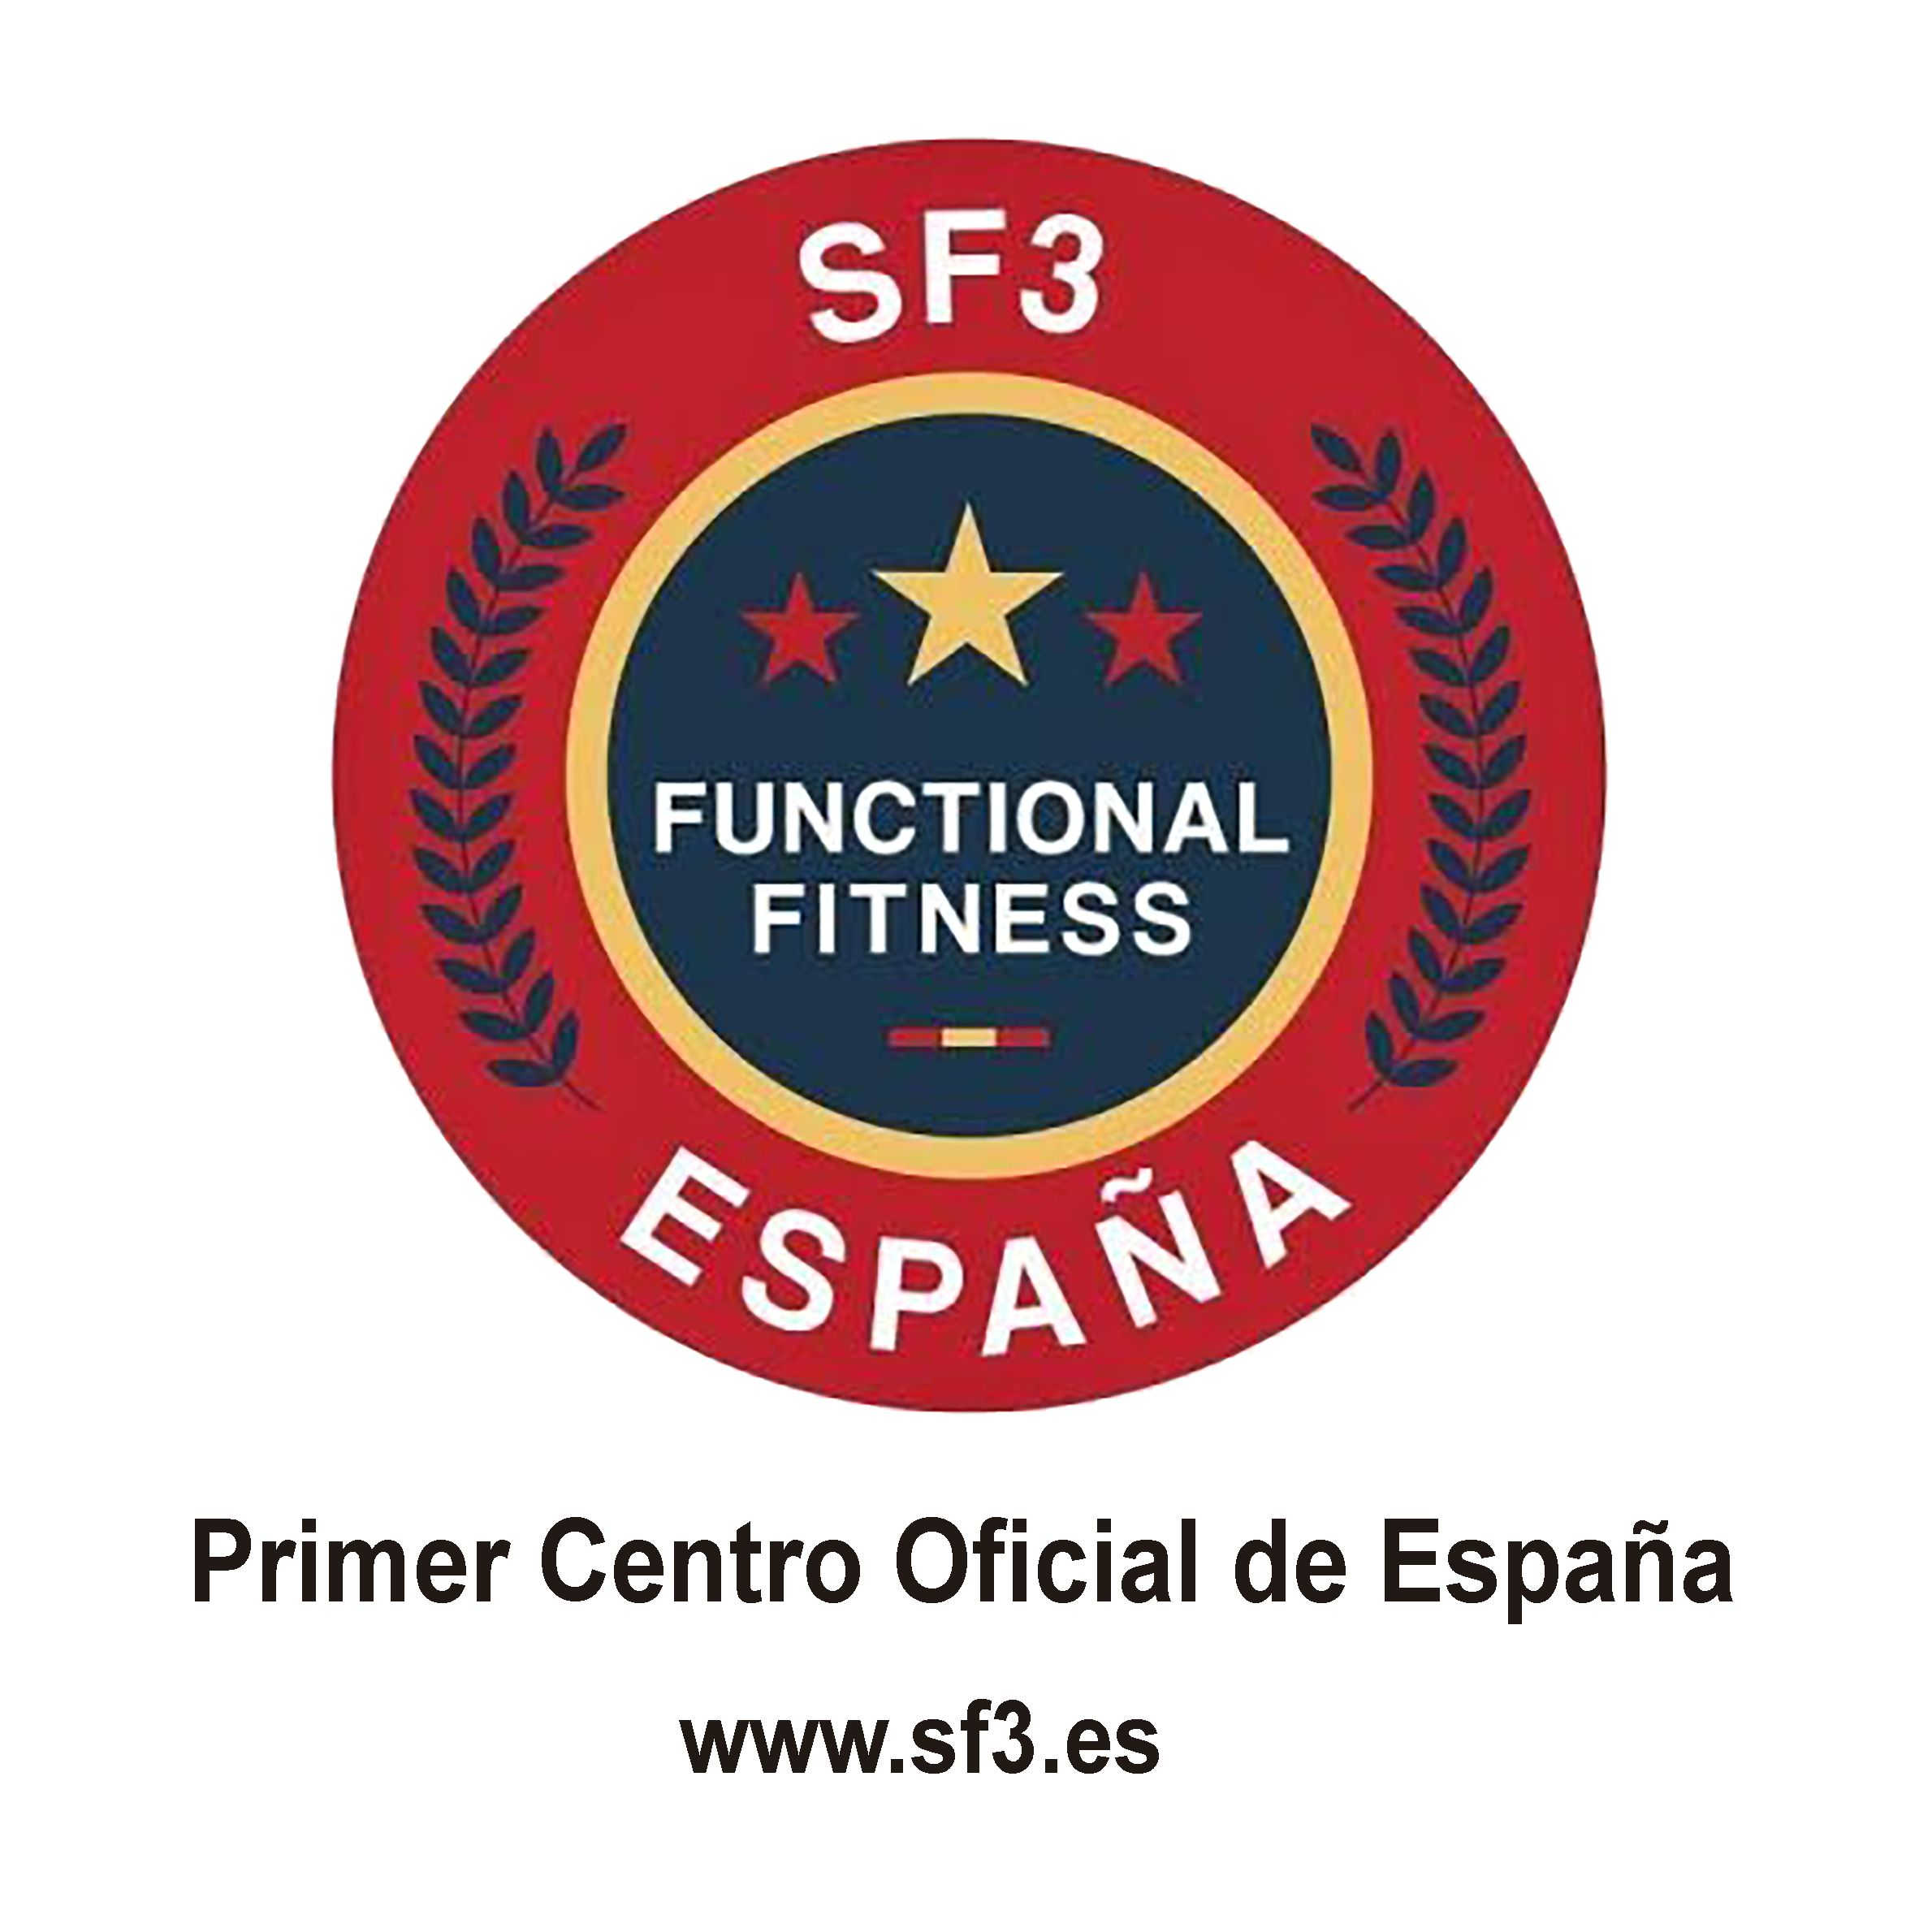 SF3 Functional Fitness